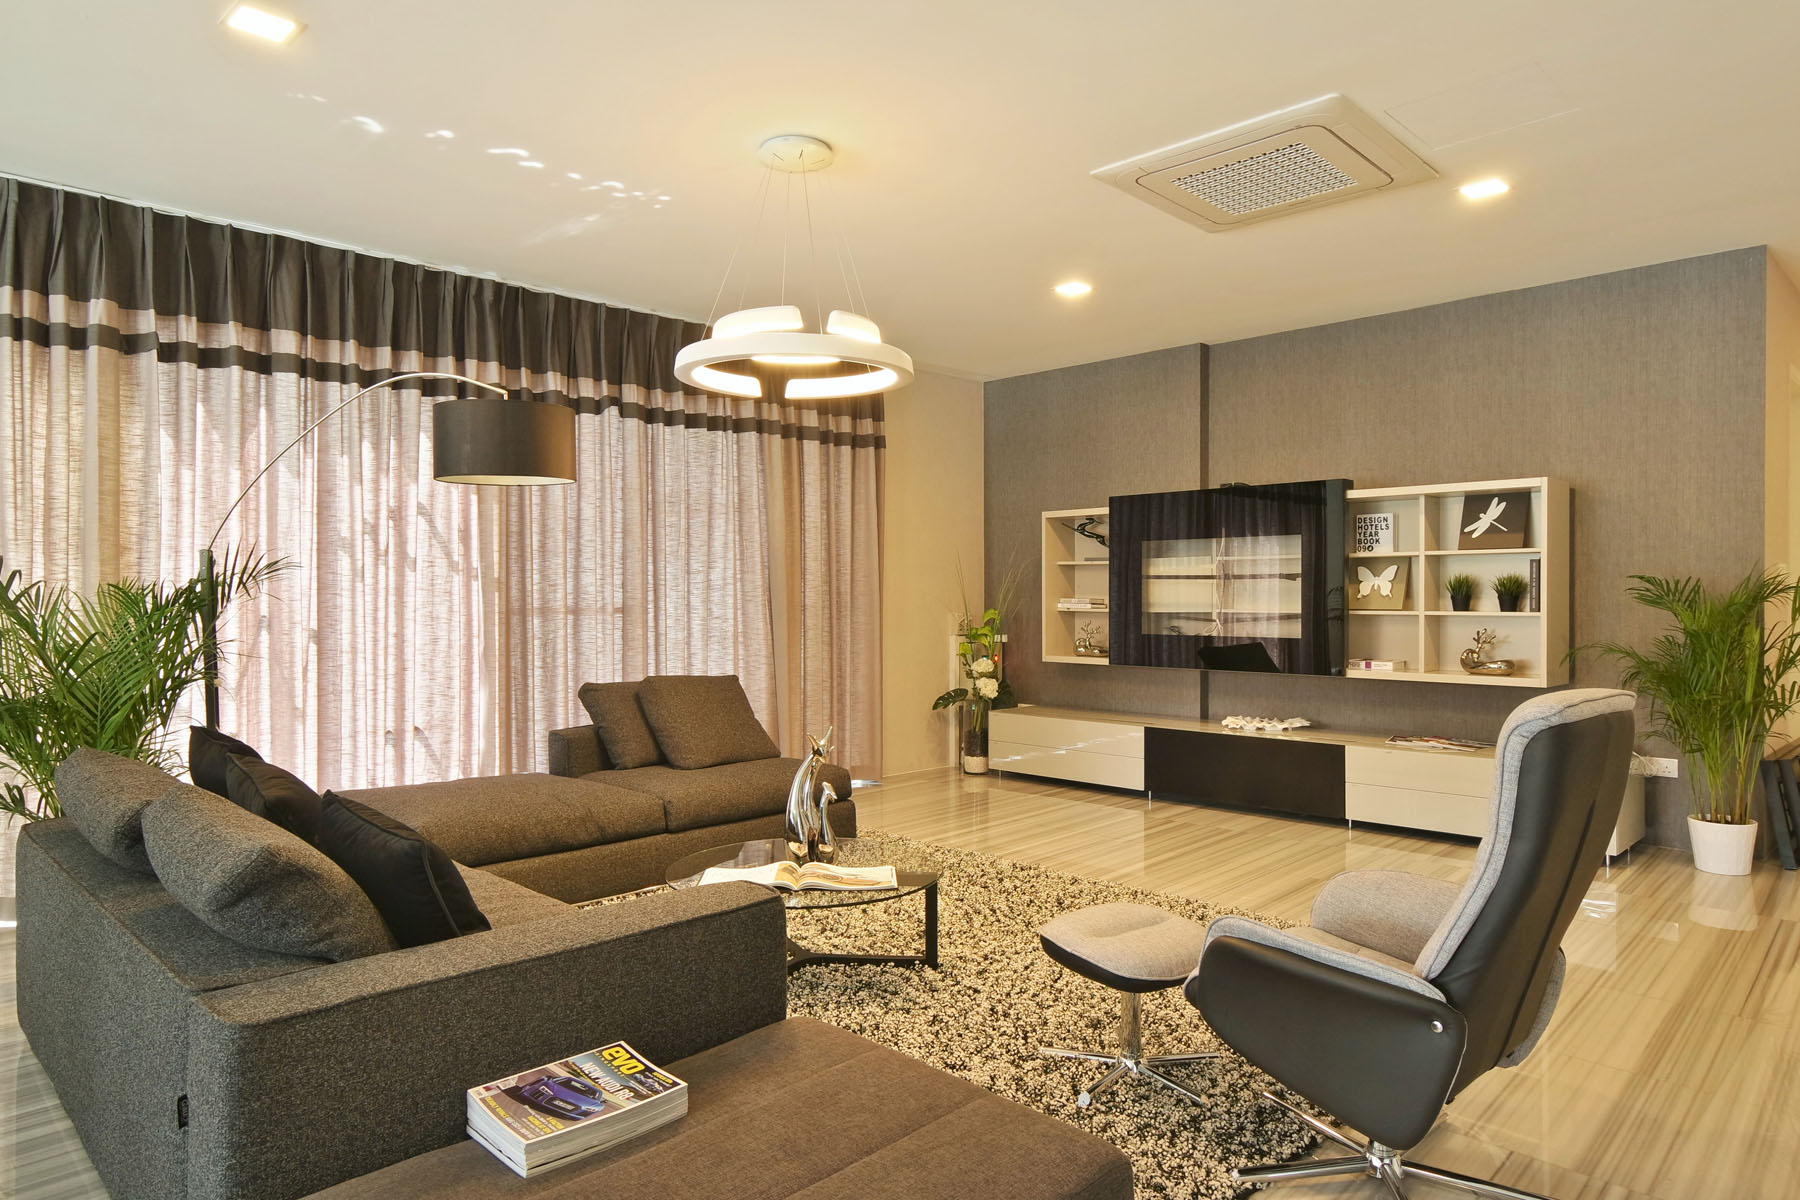 Living room decoration and design company singapore for Room decor ideas singapore